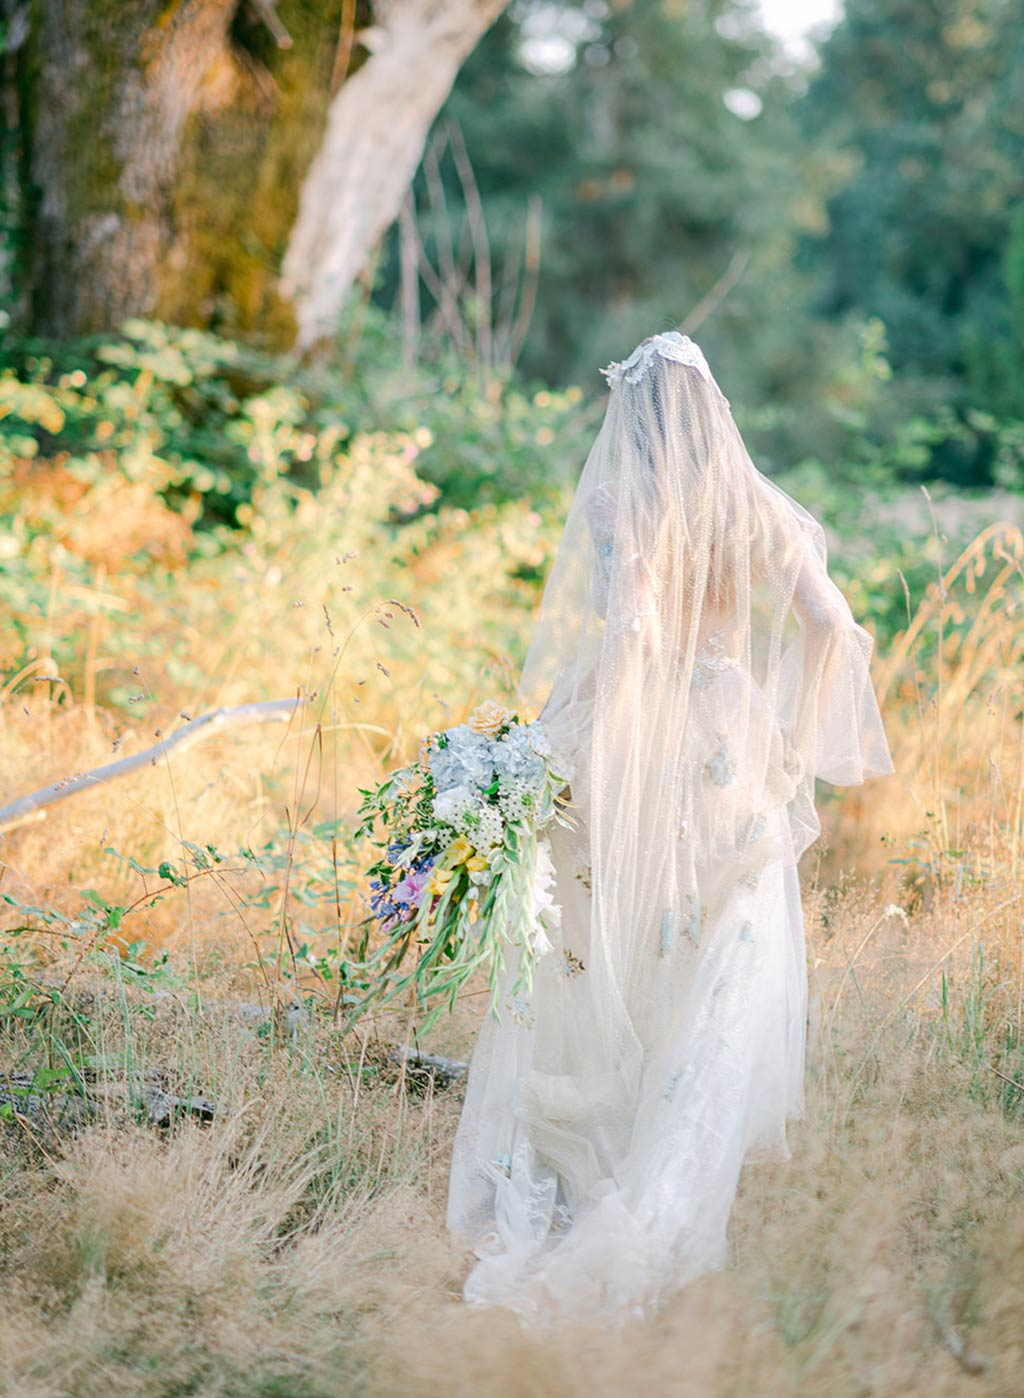 Bride in Wedding Dress and Veil in Garden Wedding Setting